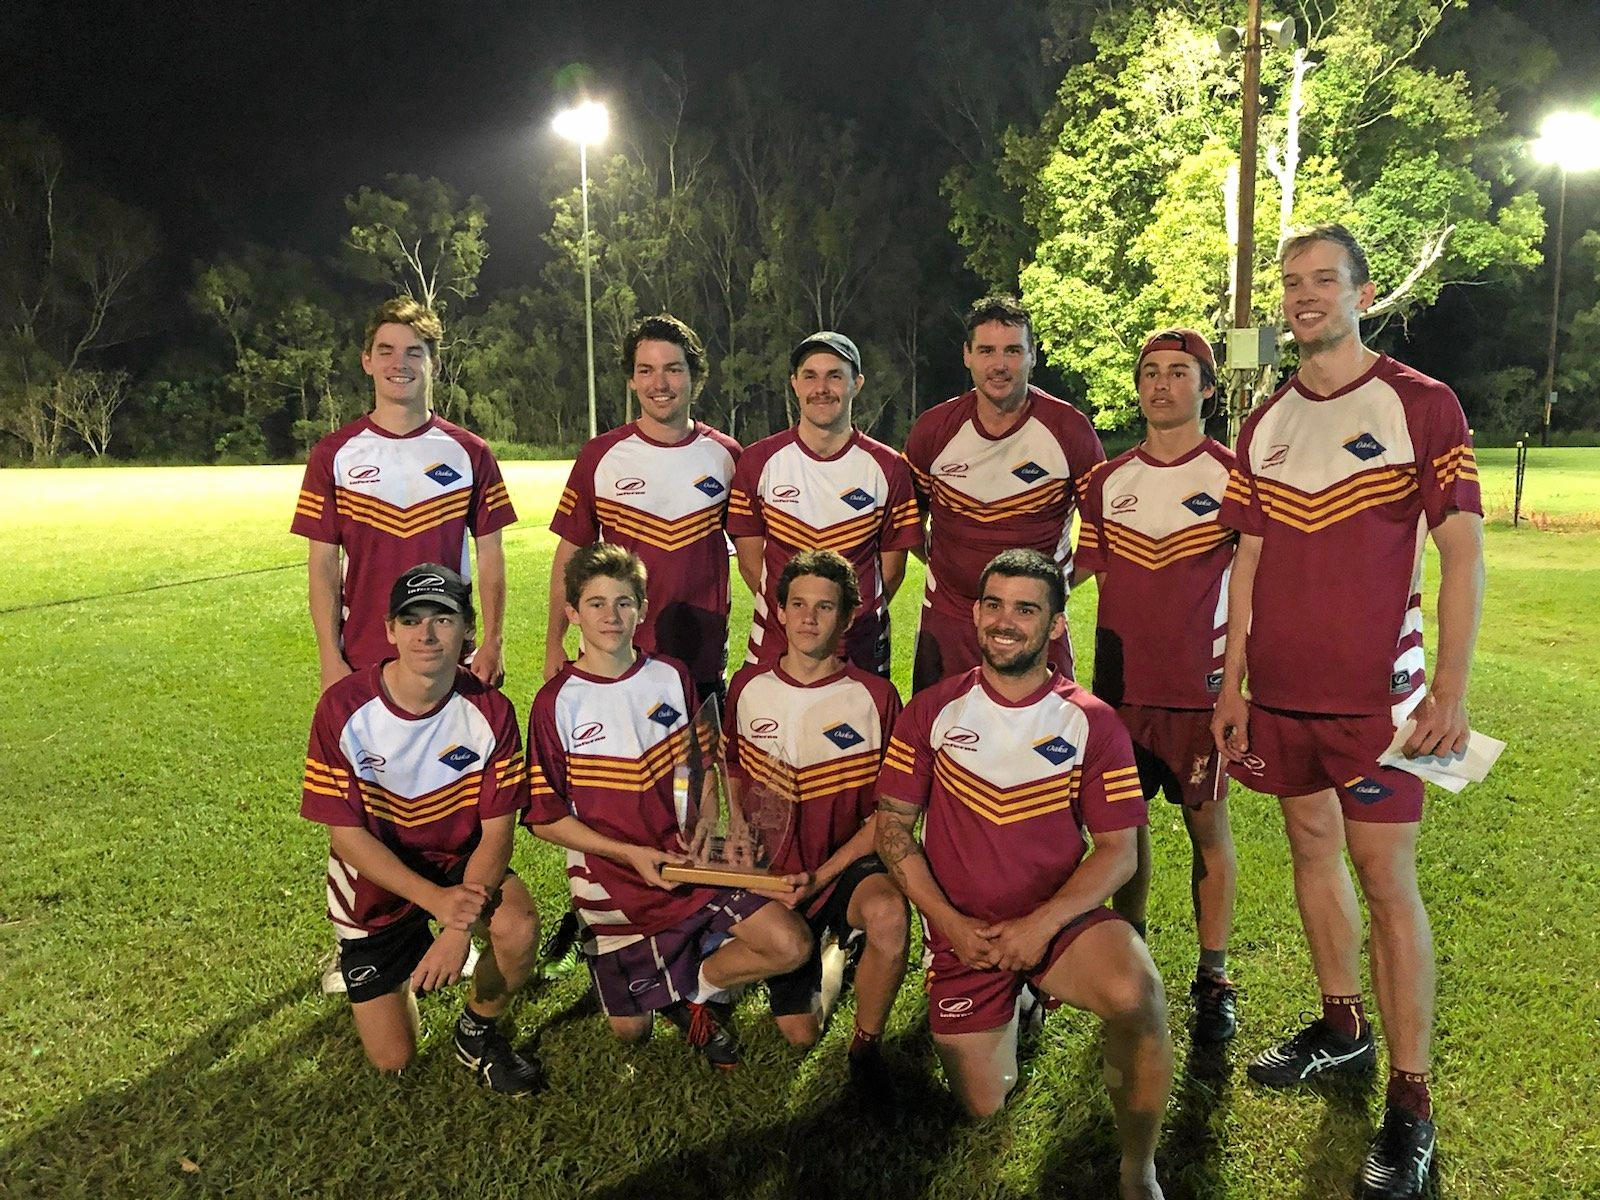 Oaka Construction defeated Rebels 10-2 in the Gladstone Touch Association 2018 Men's Division 1 grand final.